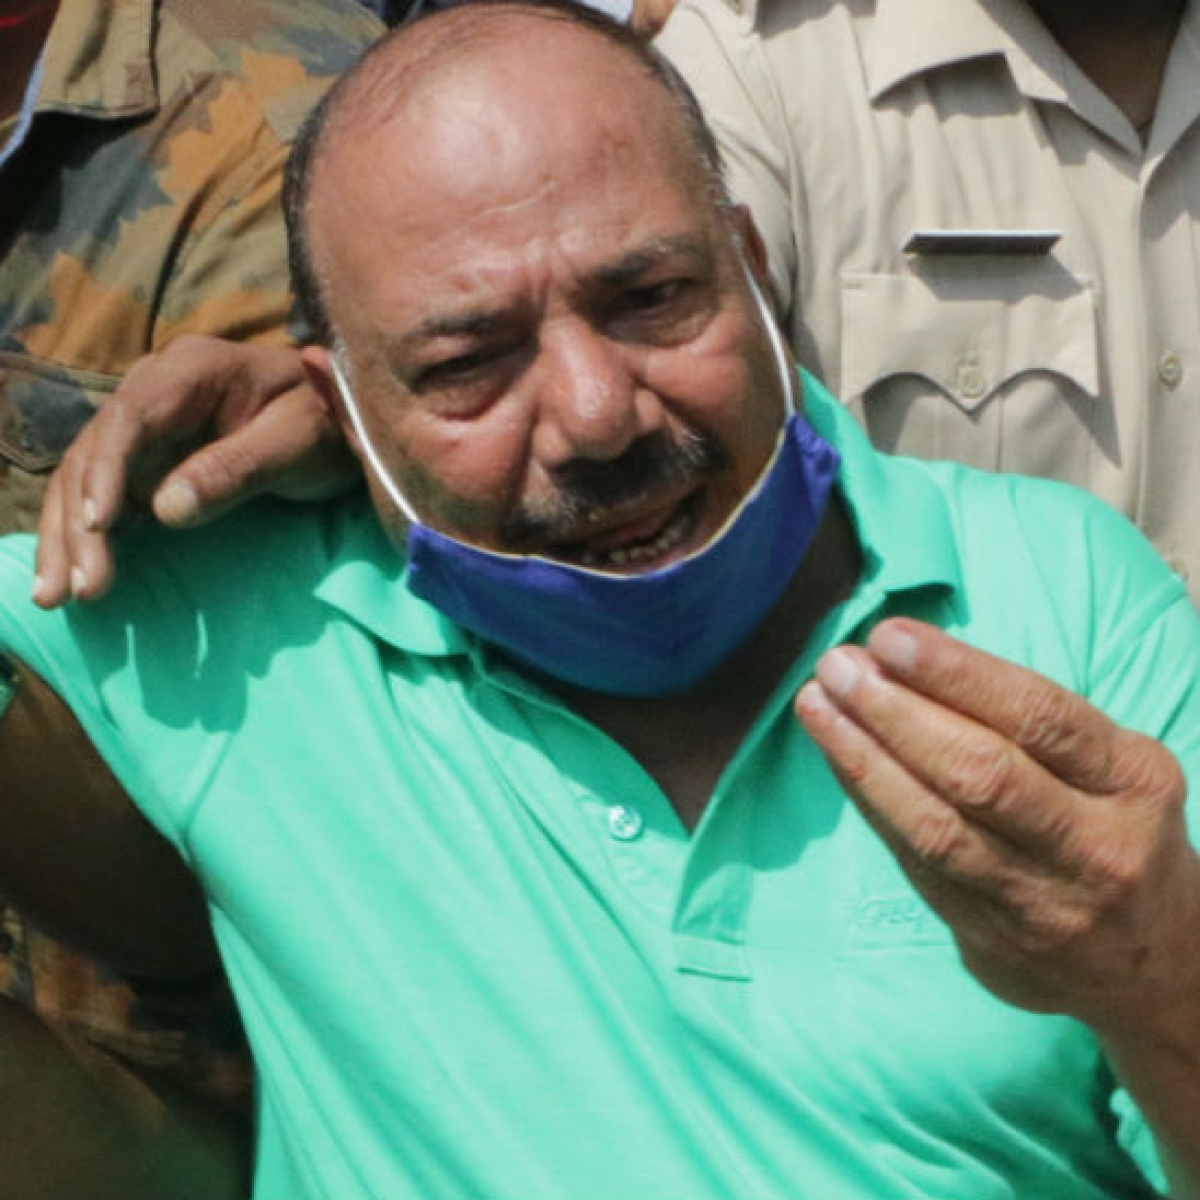 Pyare Miyan not cooperating in investigation: Indore Police